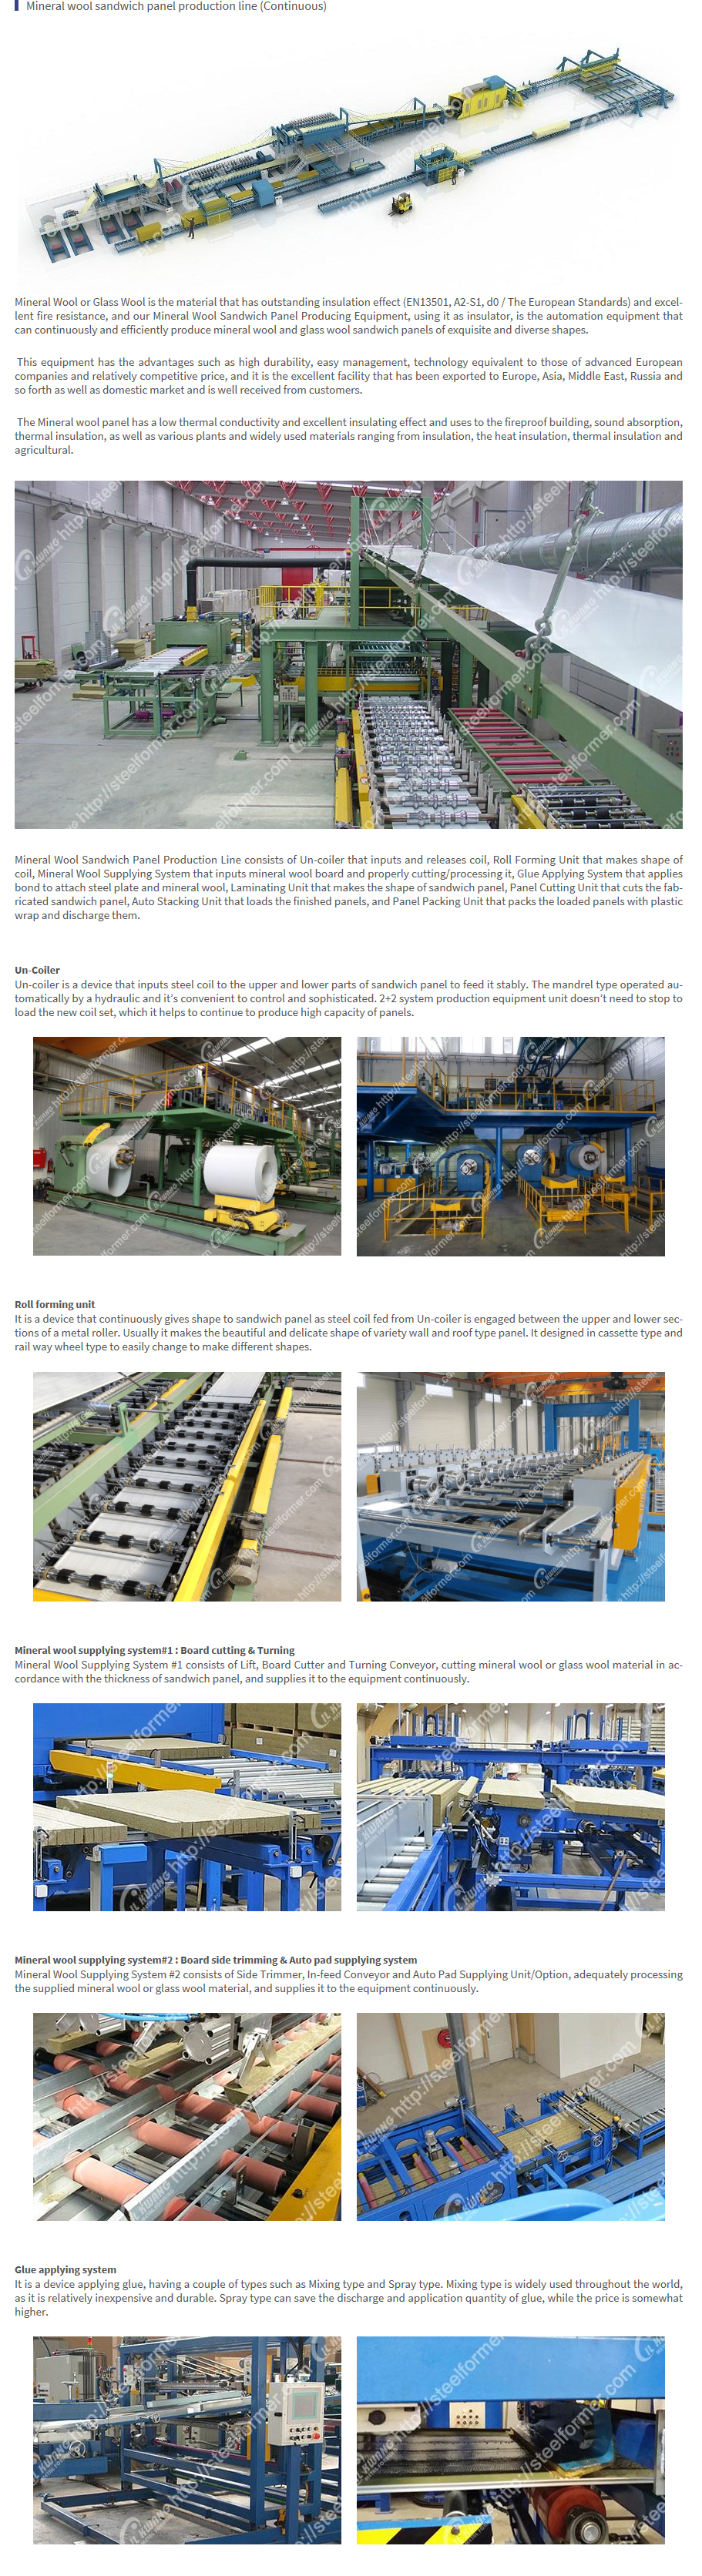 ILKWANG Metal Forming Mineral wool sandwich panel (Continuous)